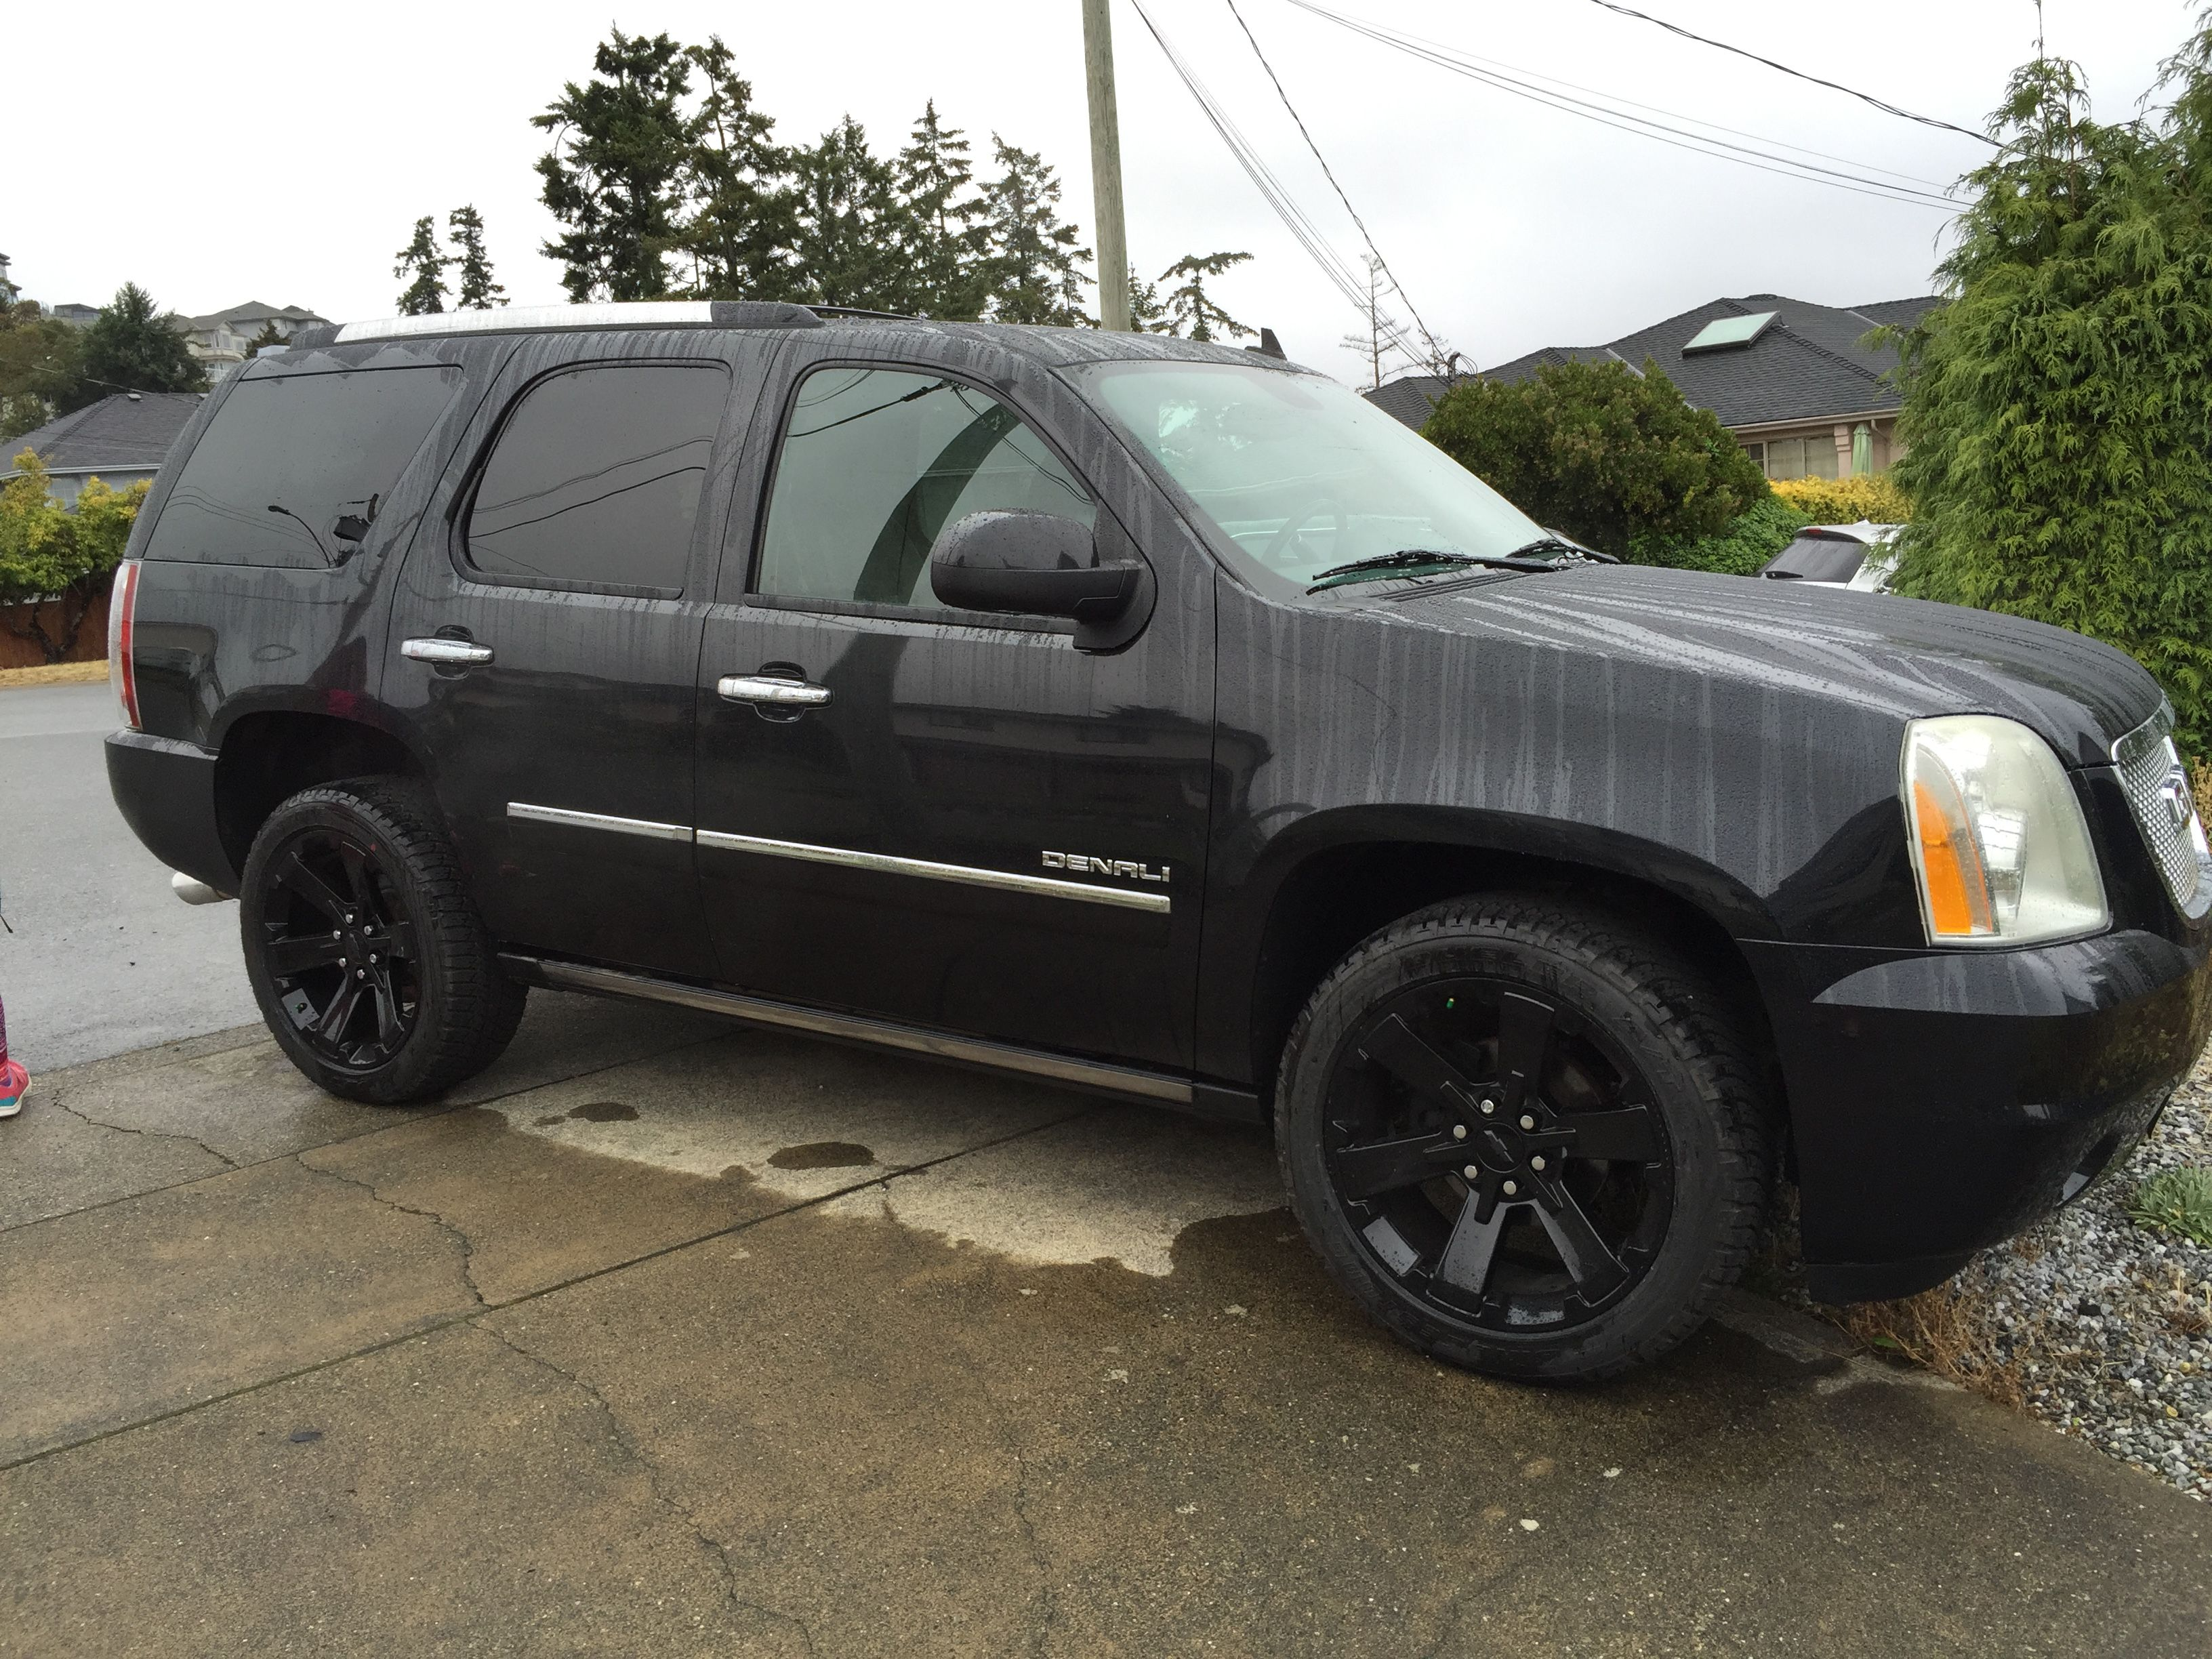 2011 Gmc Yukon Denali With 2016 Chevy 22 Rims Gmc Yukon